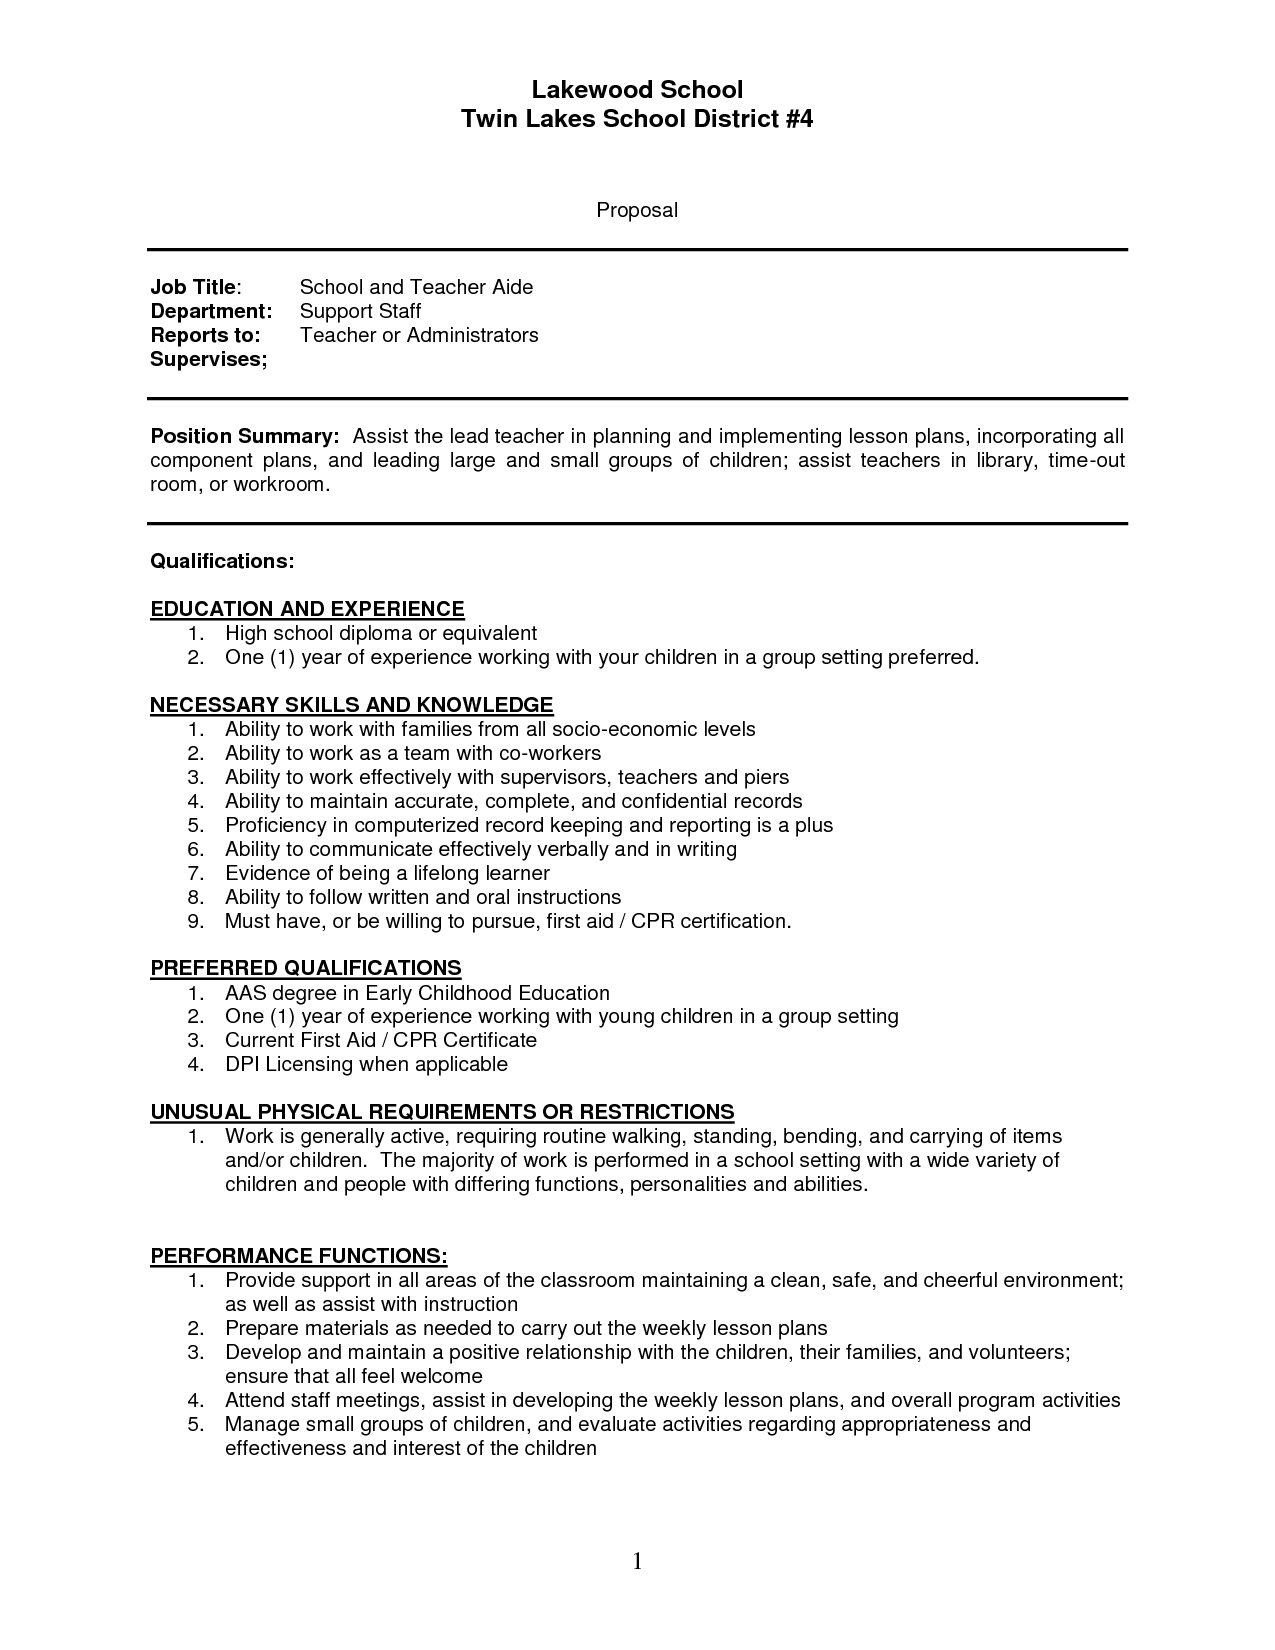 Resume For Assistant Teacher Teacher Assistant Sample Resume Sample Resume Of Teachers